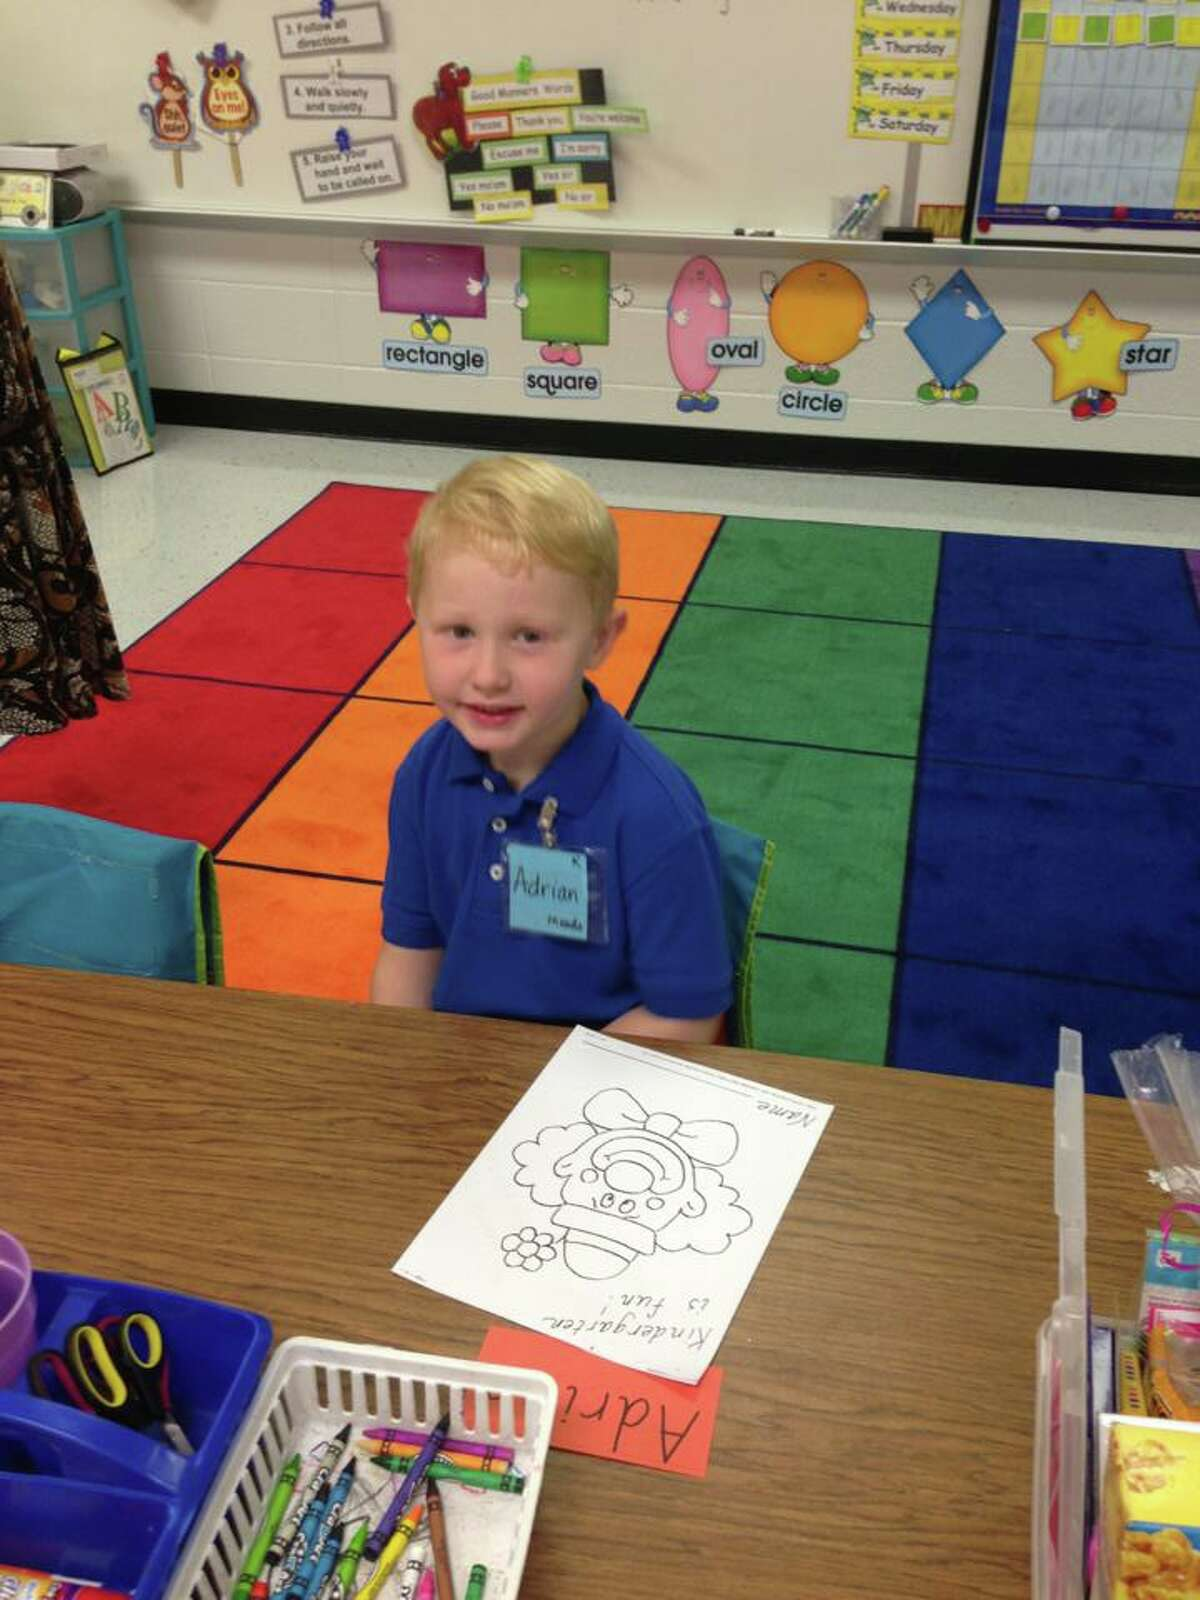 Adrian Morris on his first day of kindergarten in Pearland.